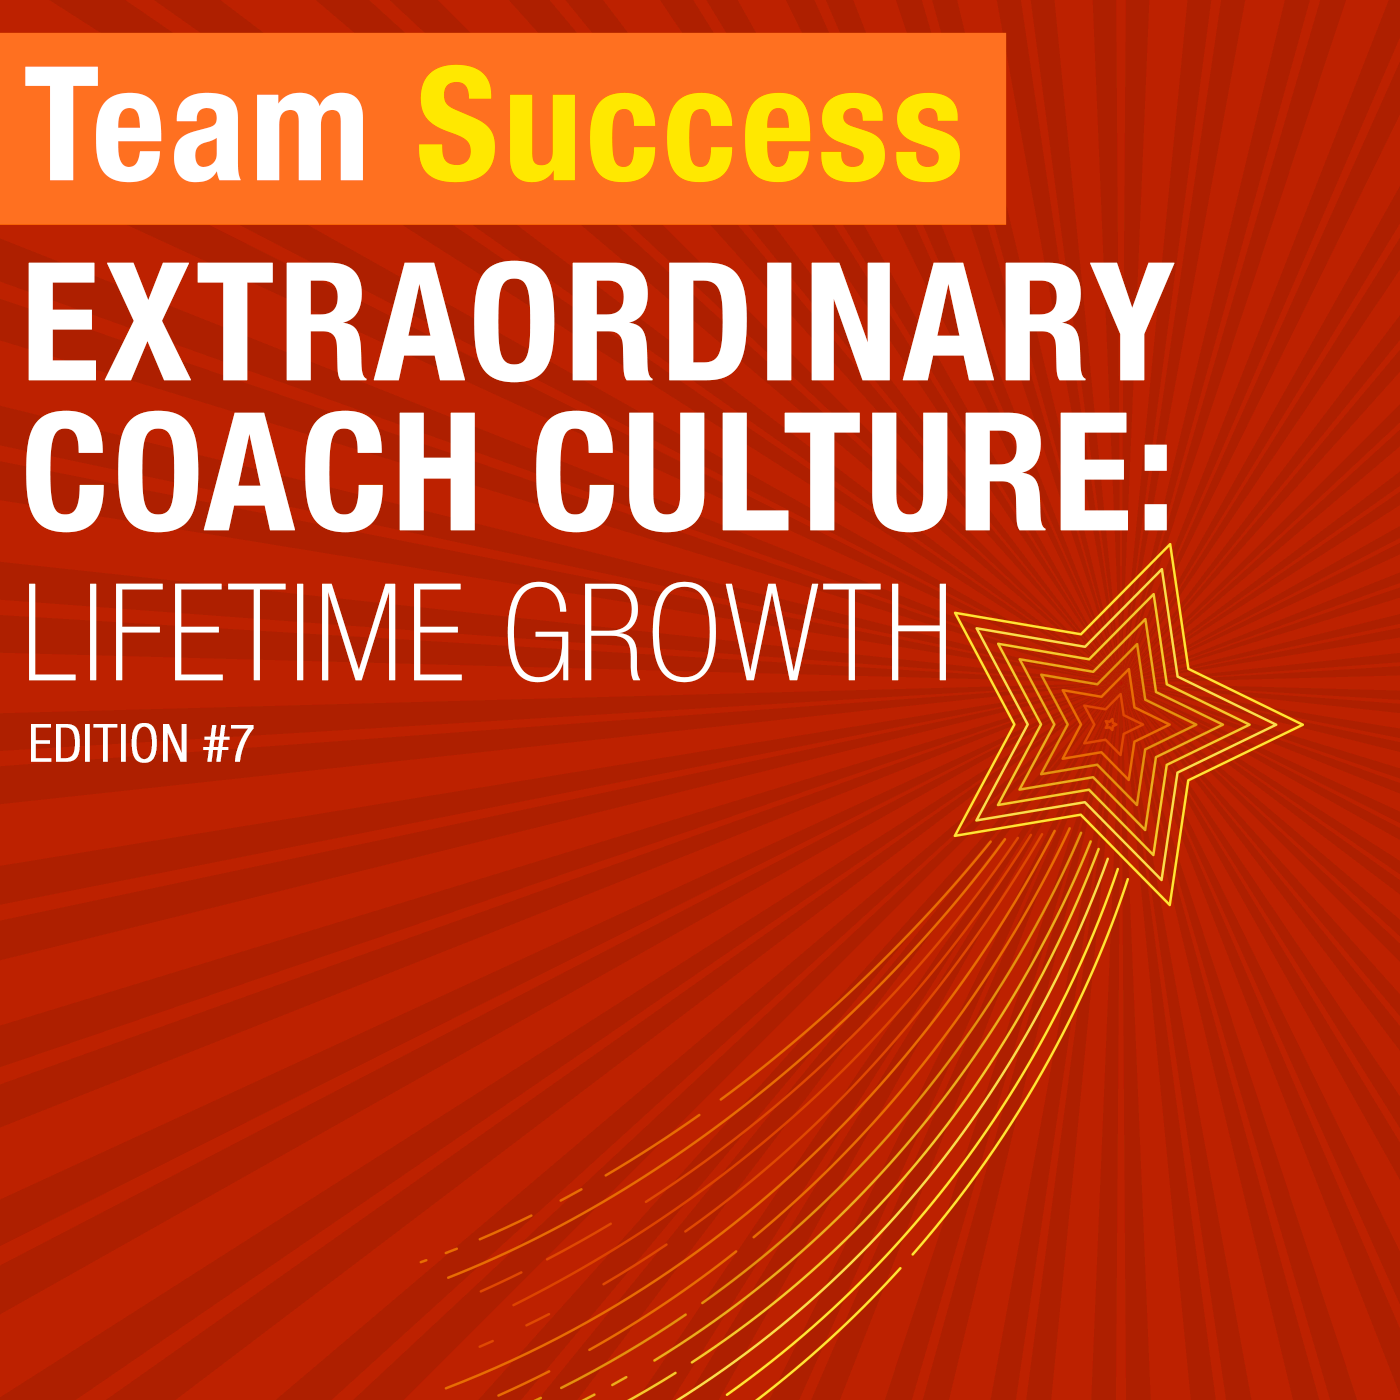 Extraordinary Coach Culture: Lifetime Growth